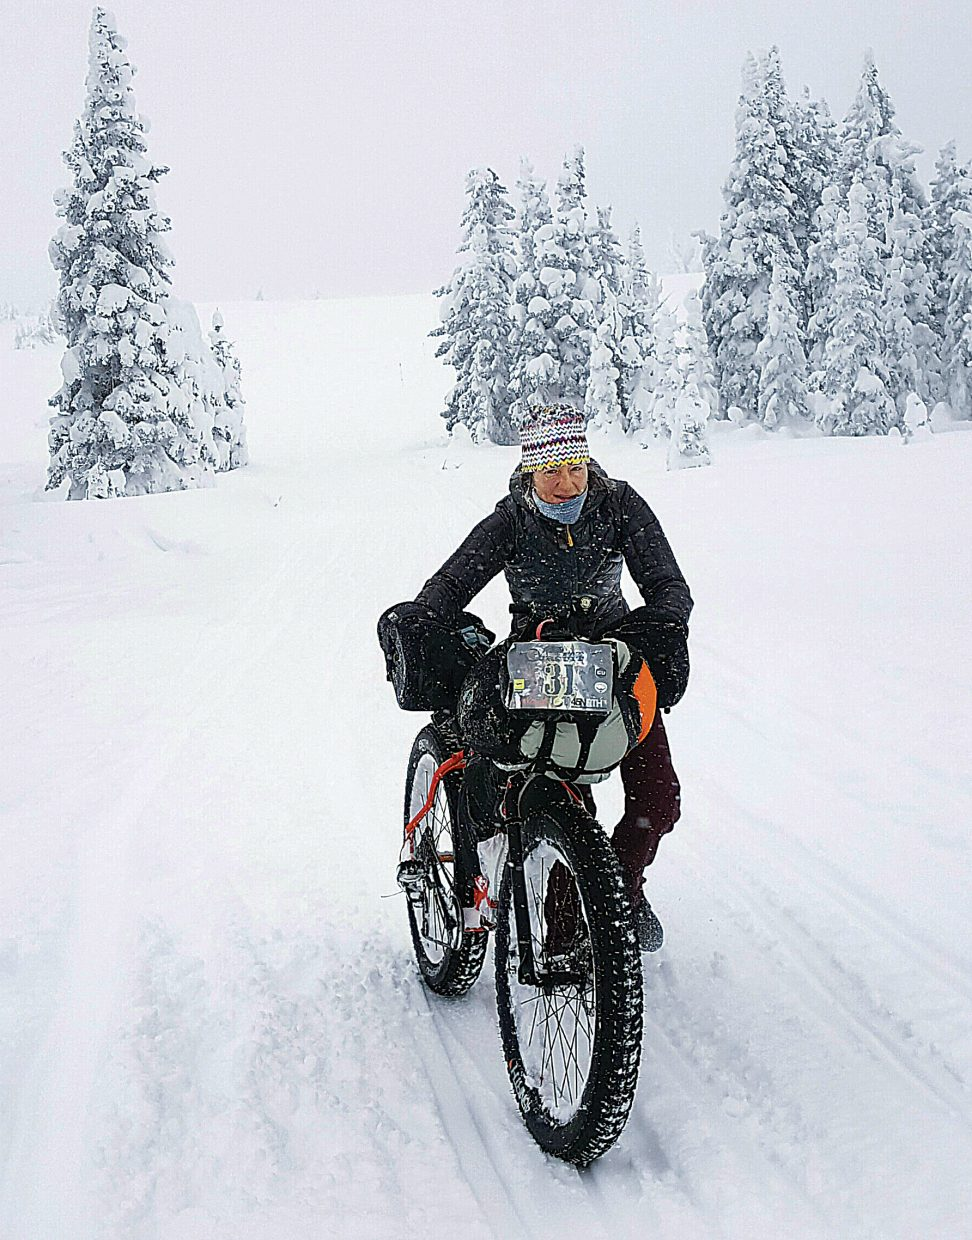 Kellie Neson pushes her bike along the trail during the Jay P's Backyard Fat Pursuit during the weekend. Nelson competed in the 200-kilometer race, while fellow local rider Graham Muir competed in the 200-mile race. The two joined forces halfway through, but conditions kept them from completing the ride.